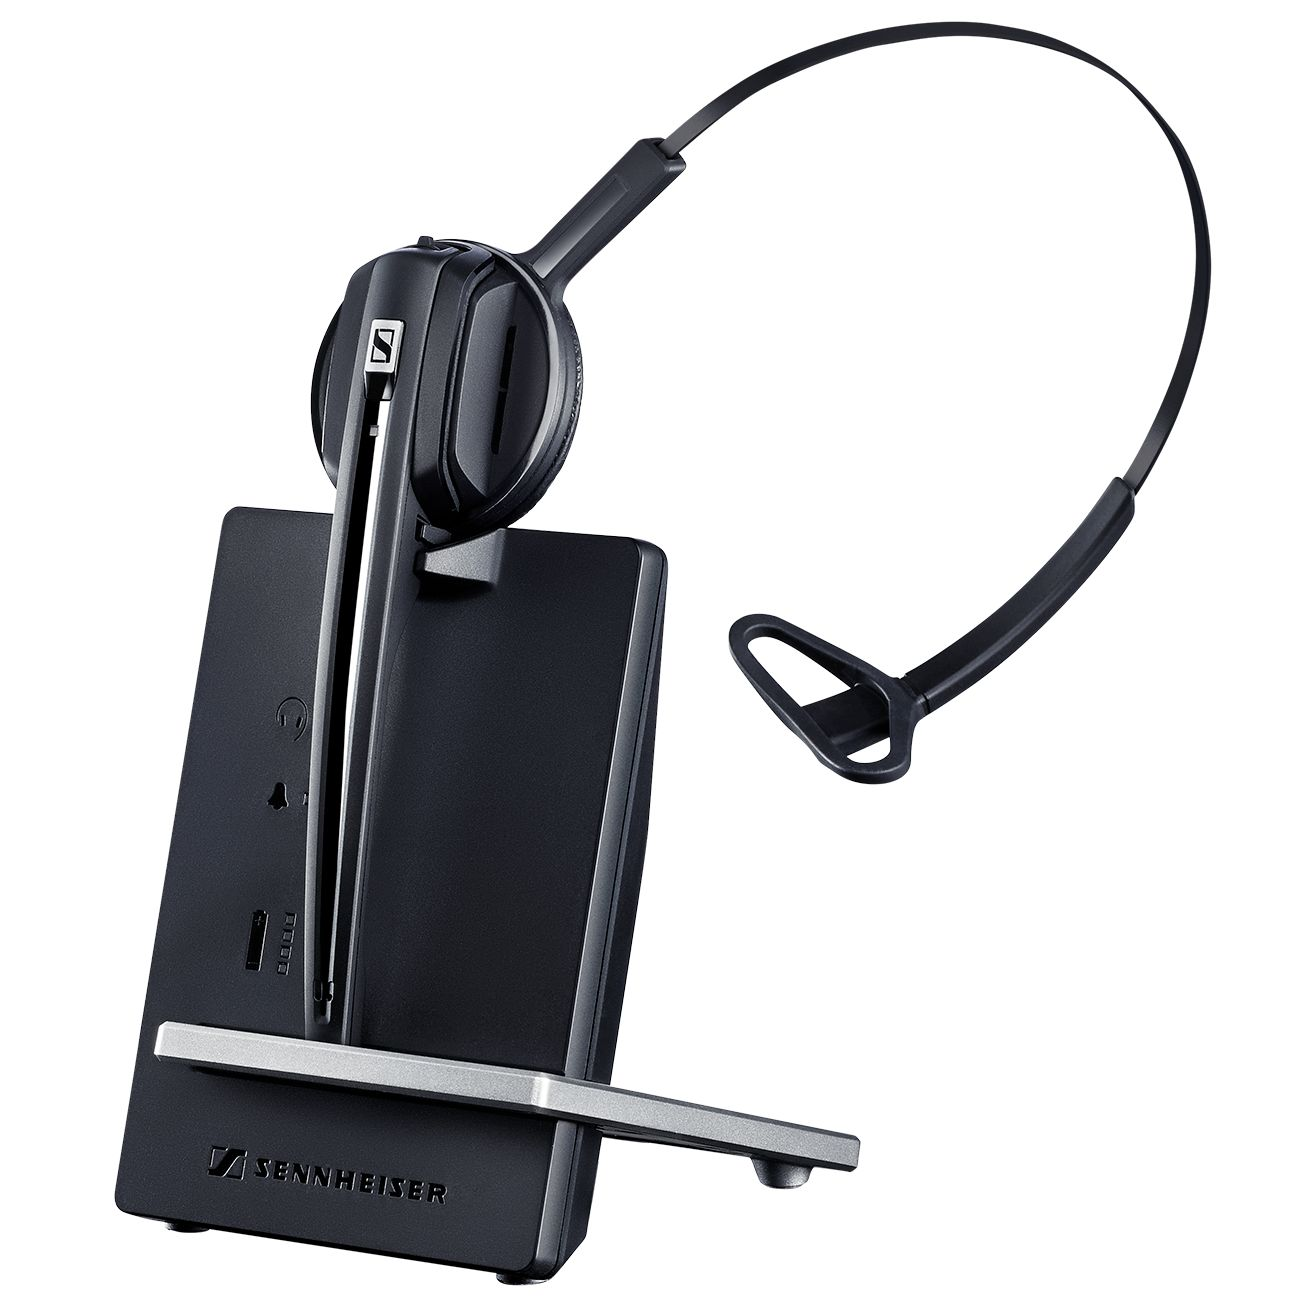 Sennheiser D 10 (D10) Phone Wireless Headset 506410